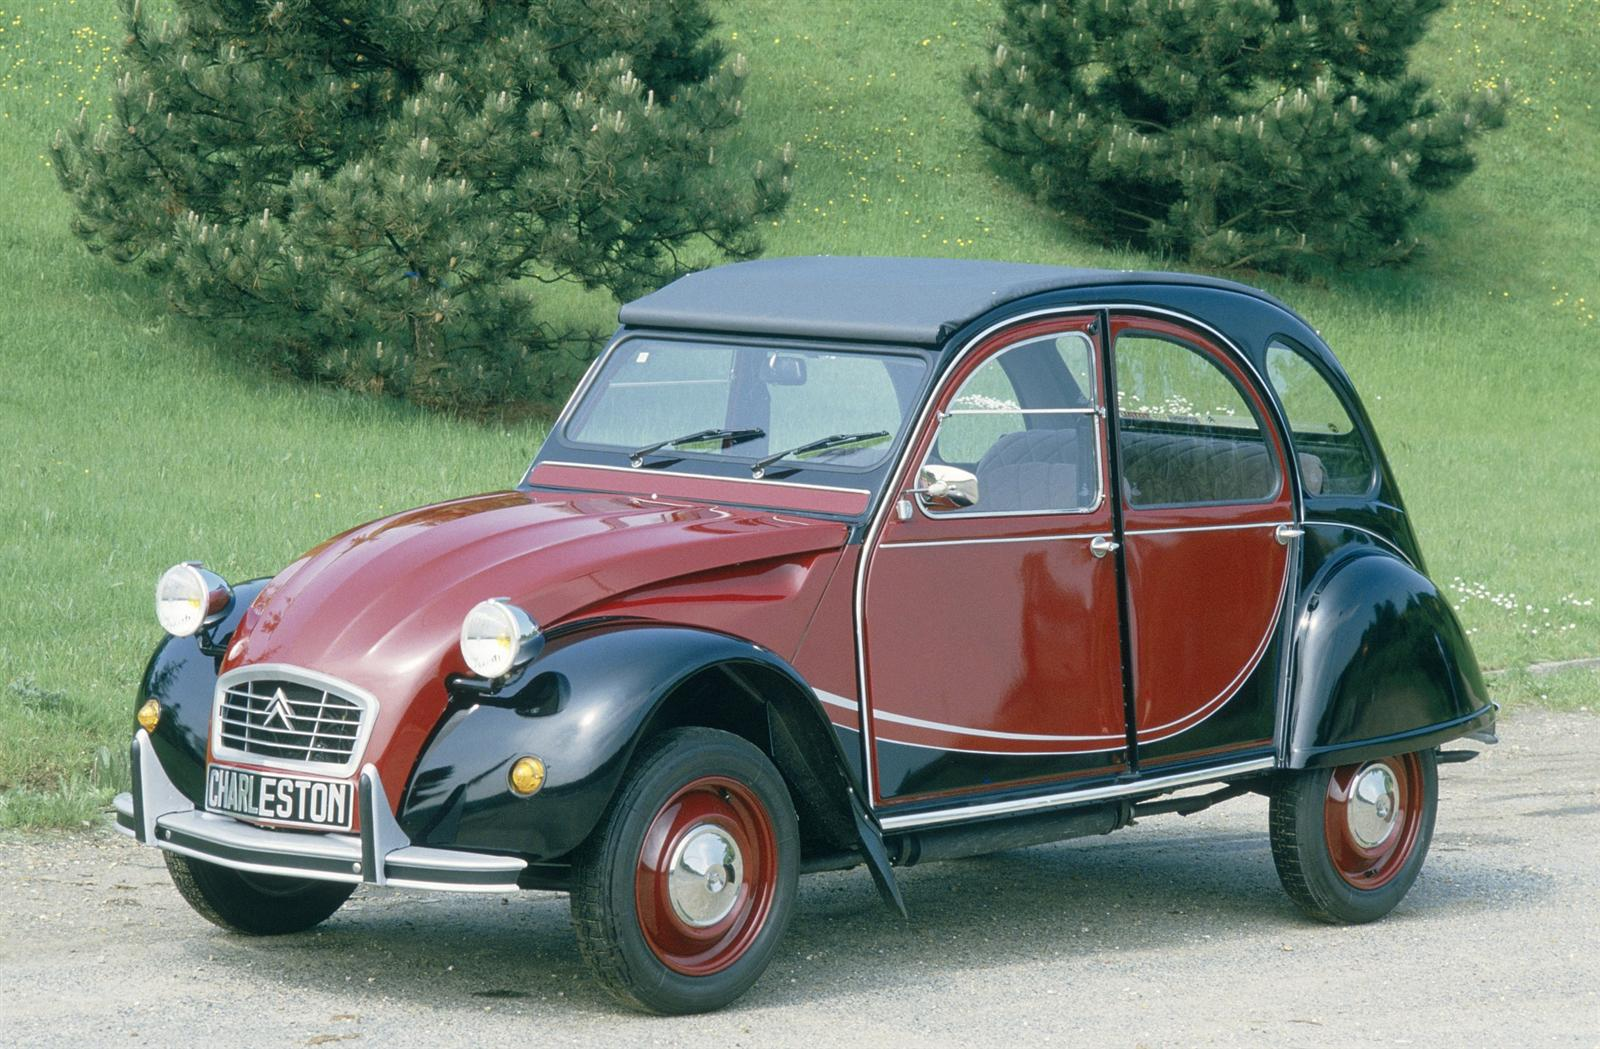 1983 citroen 2cv charleston desktop wallpaper and high. Black Bedroom Furniture Sets. Home Design Ideas